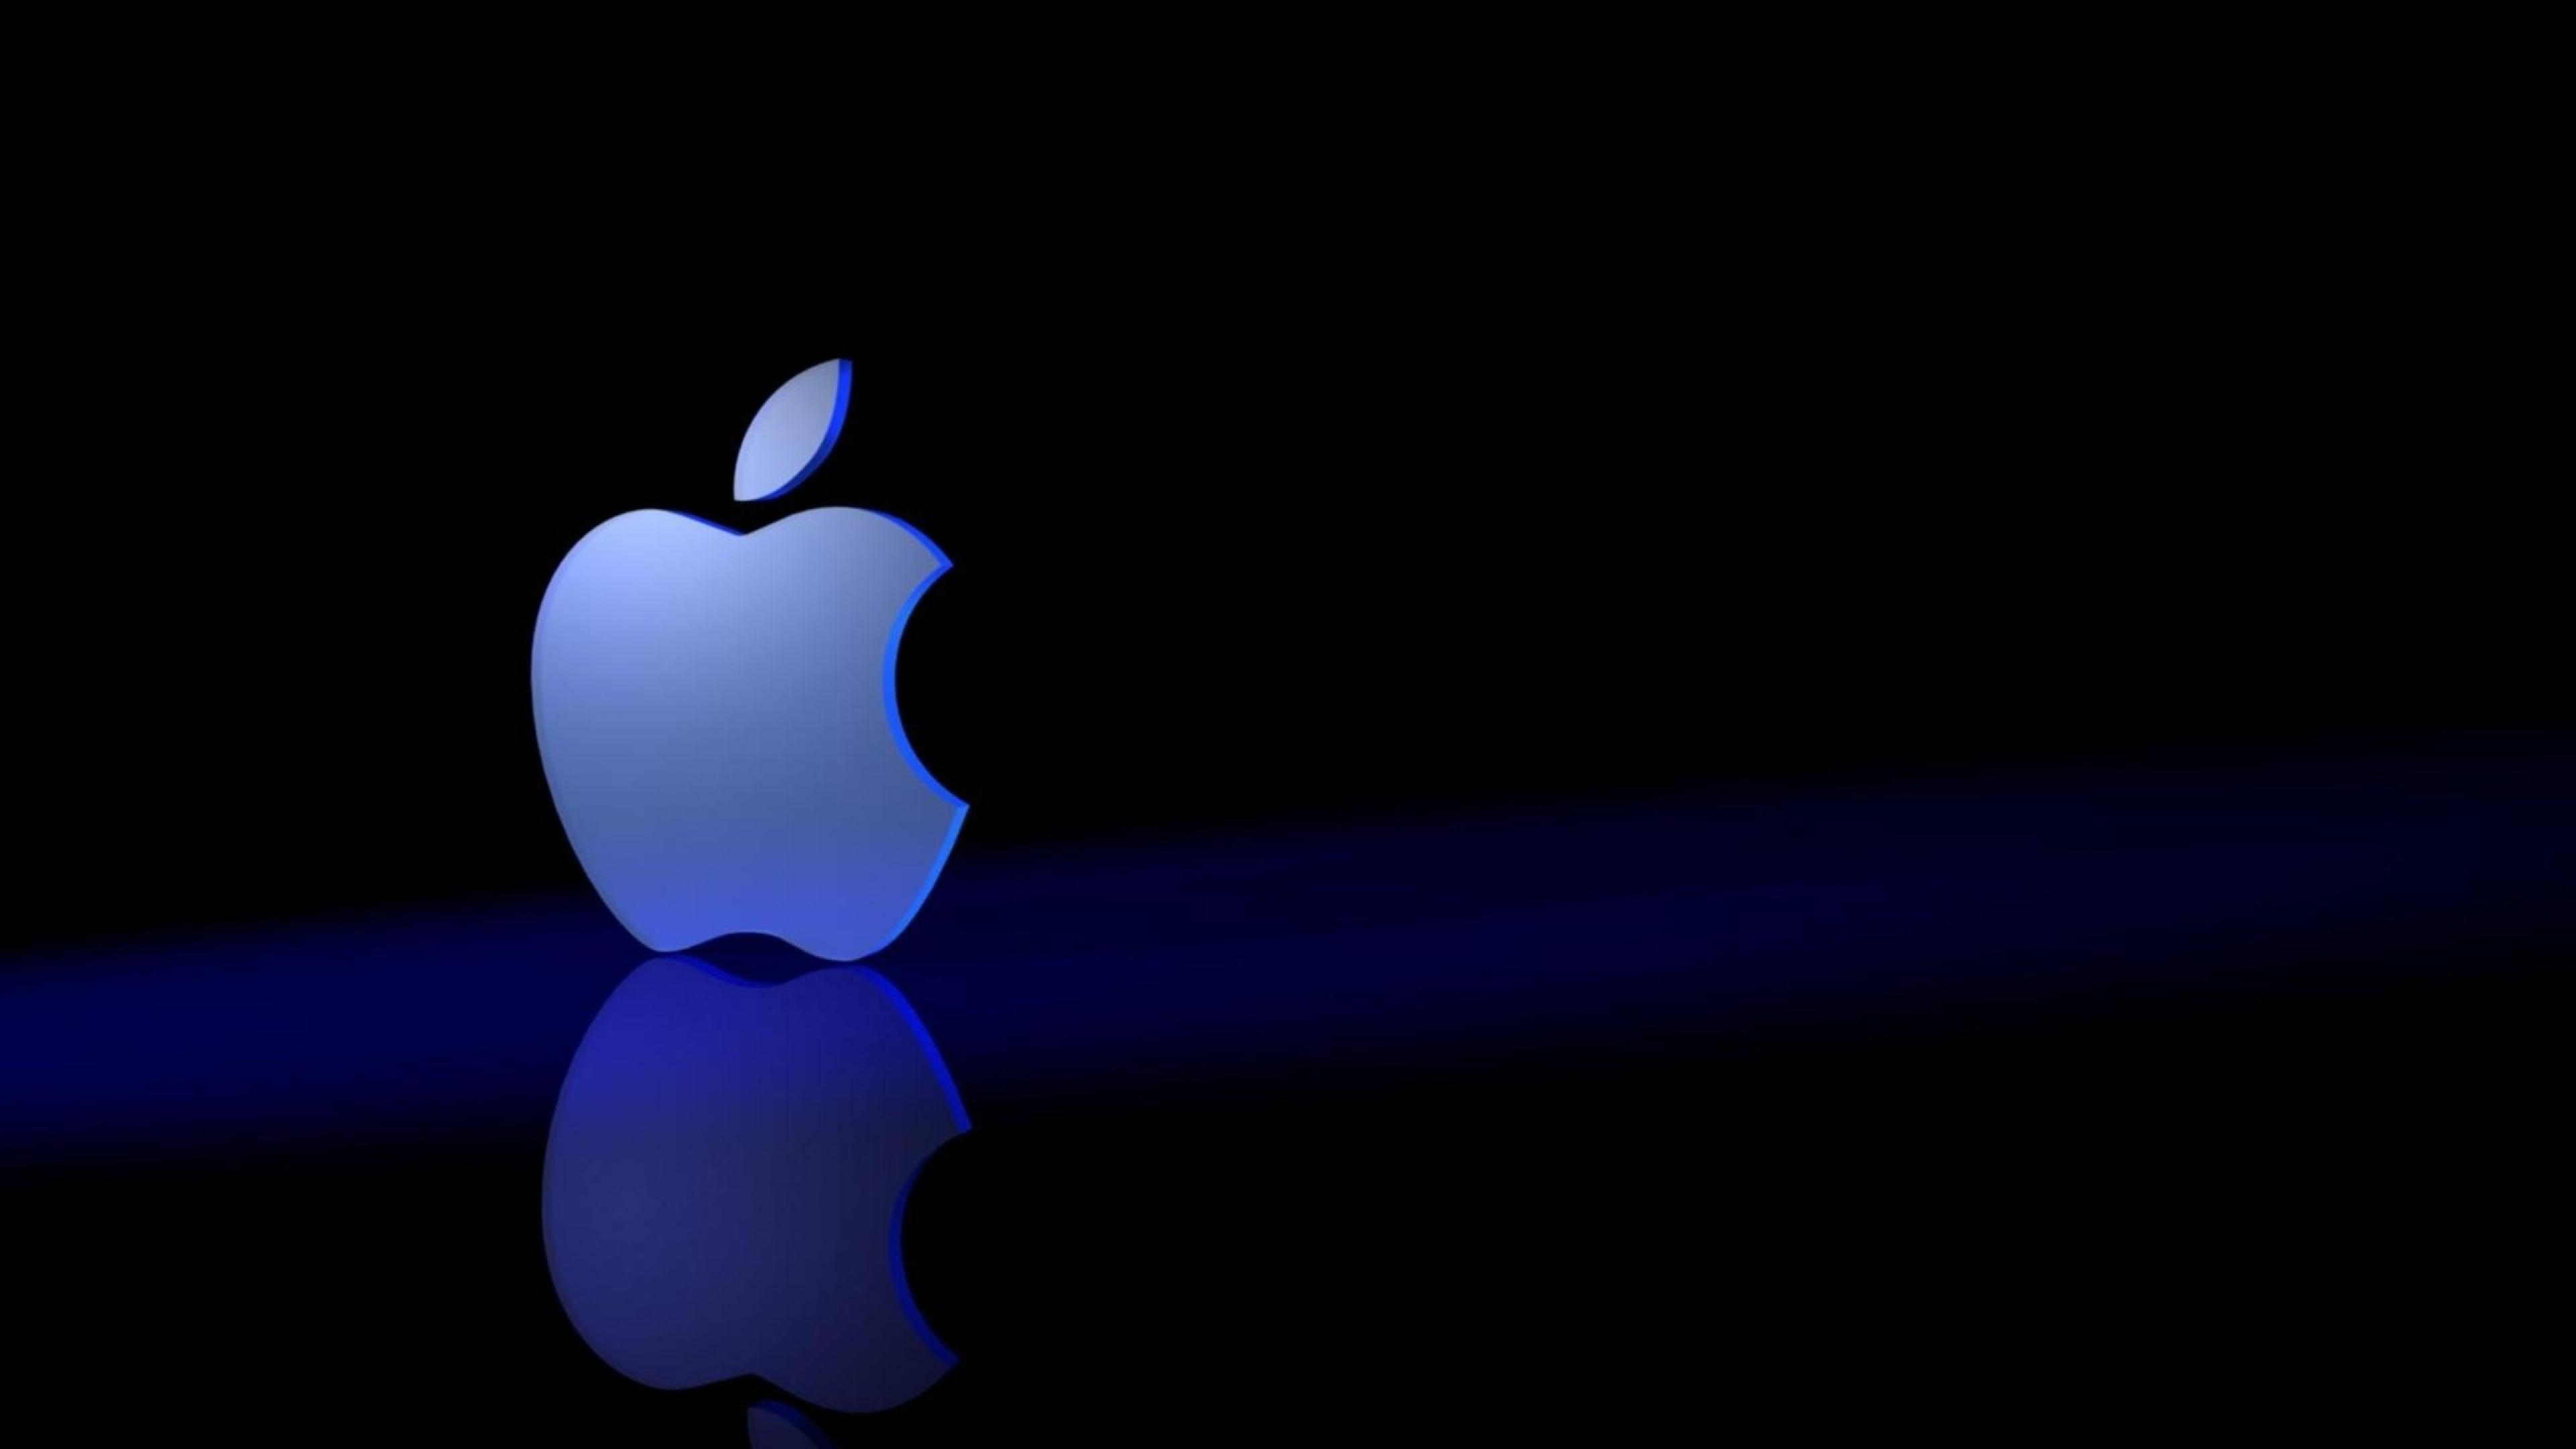 Related For Apple Logo Animated Wallpaper Desktop 429829 3840x2160